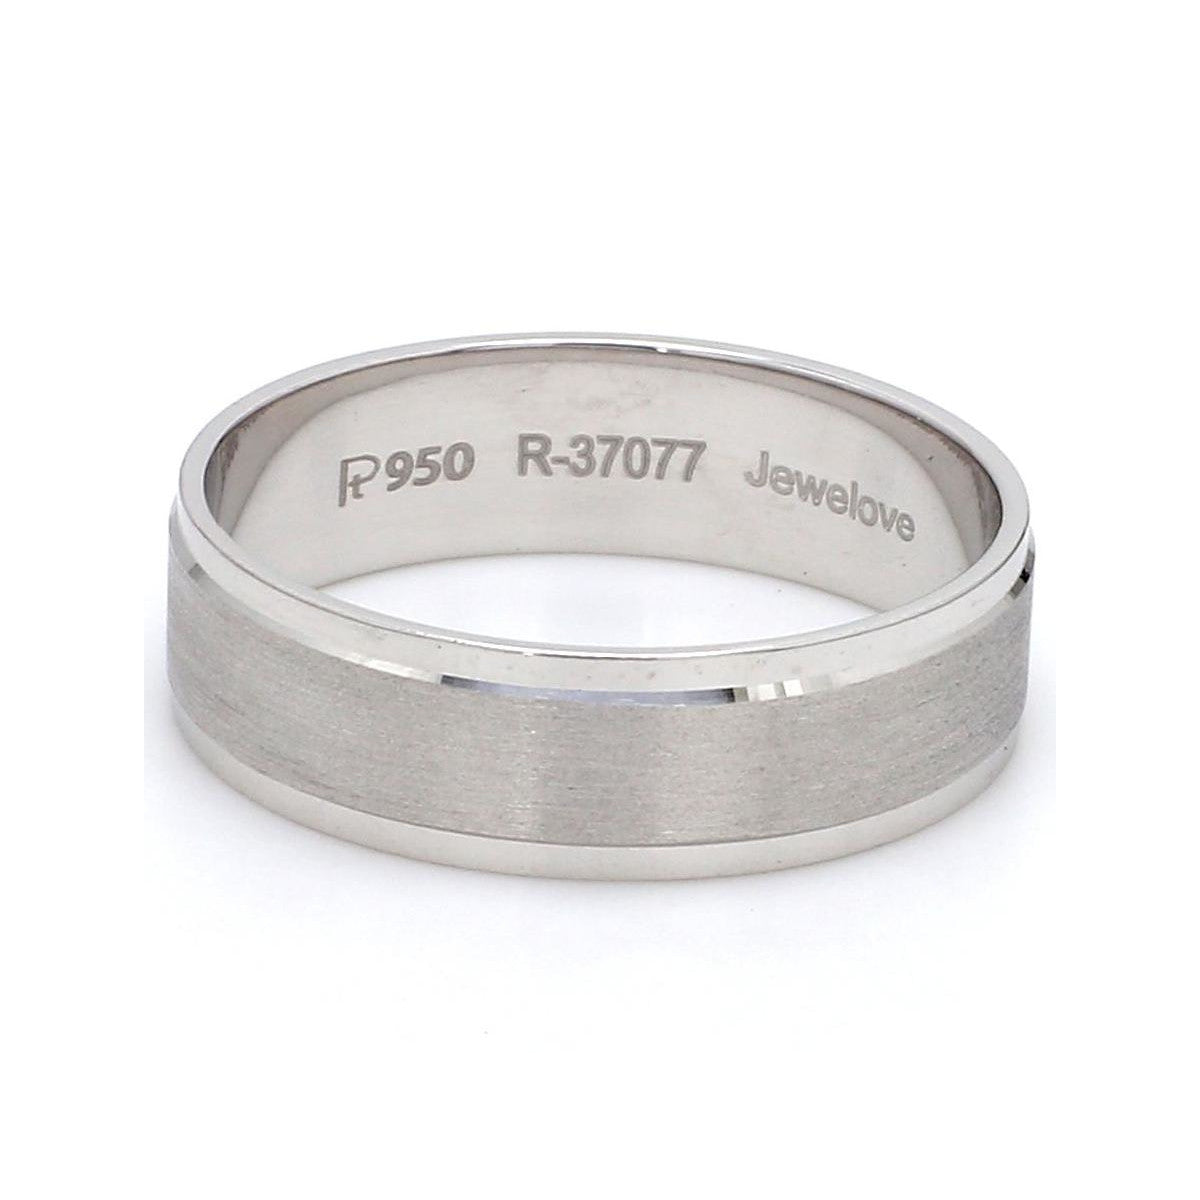 Front View of Classic Platinum Love Bands without Diamonds SJ PTO 104